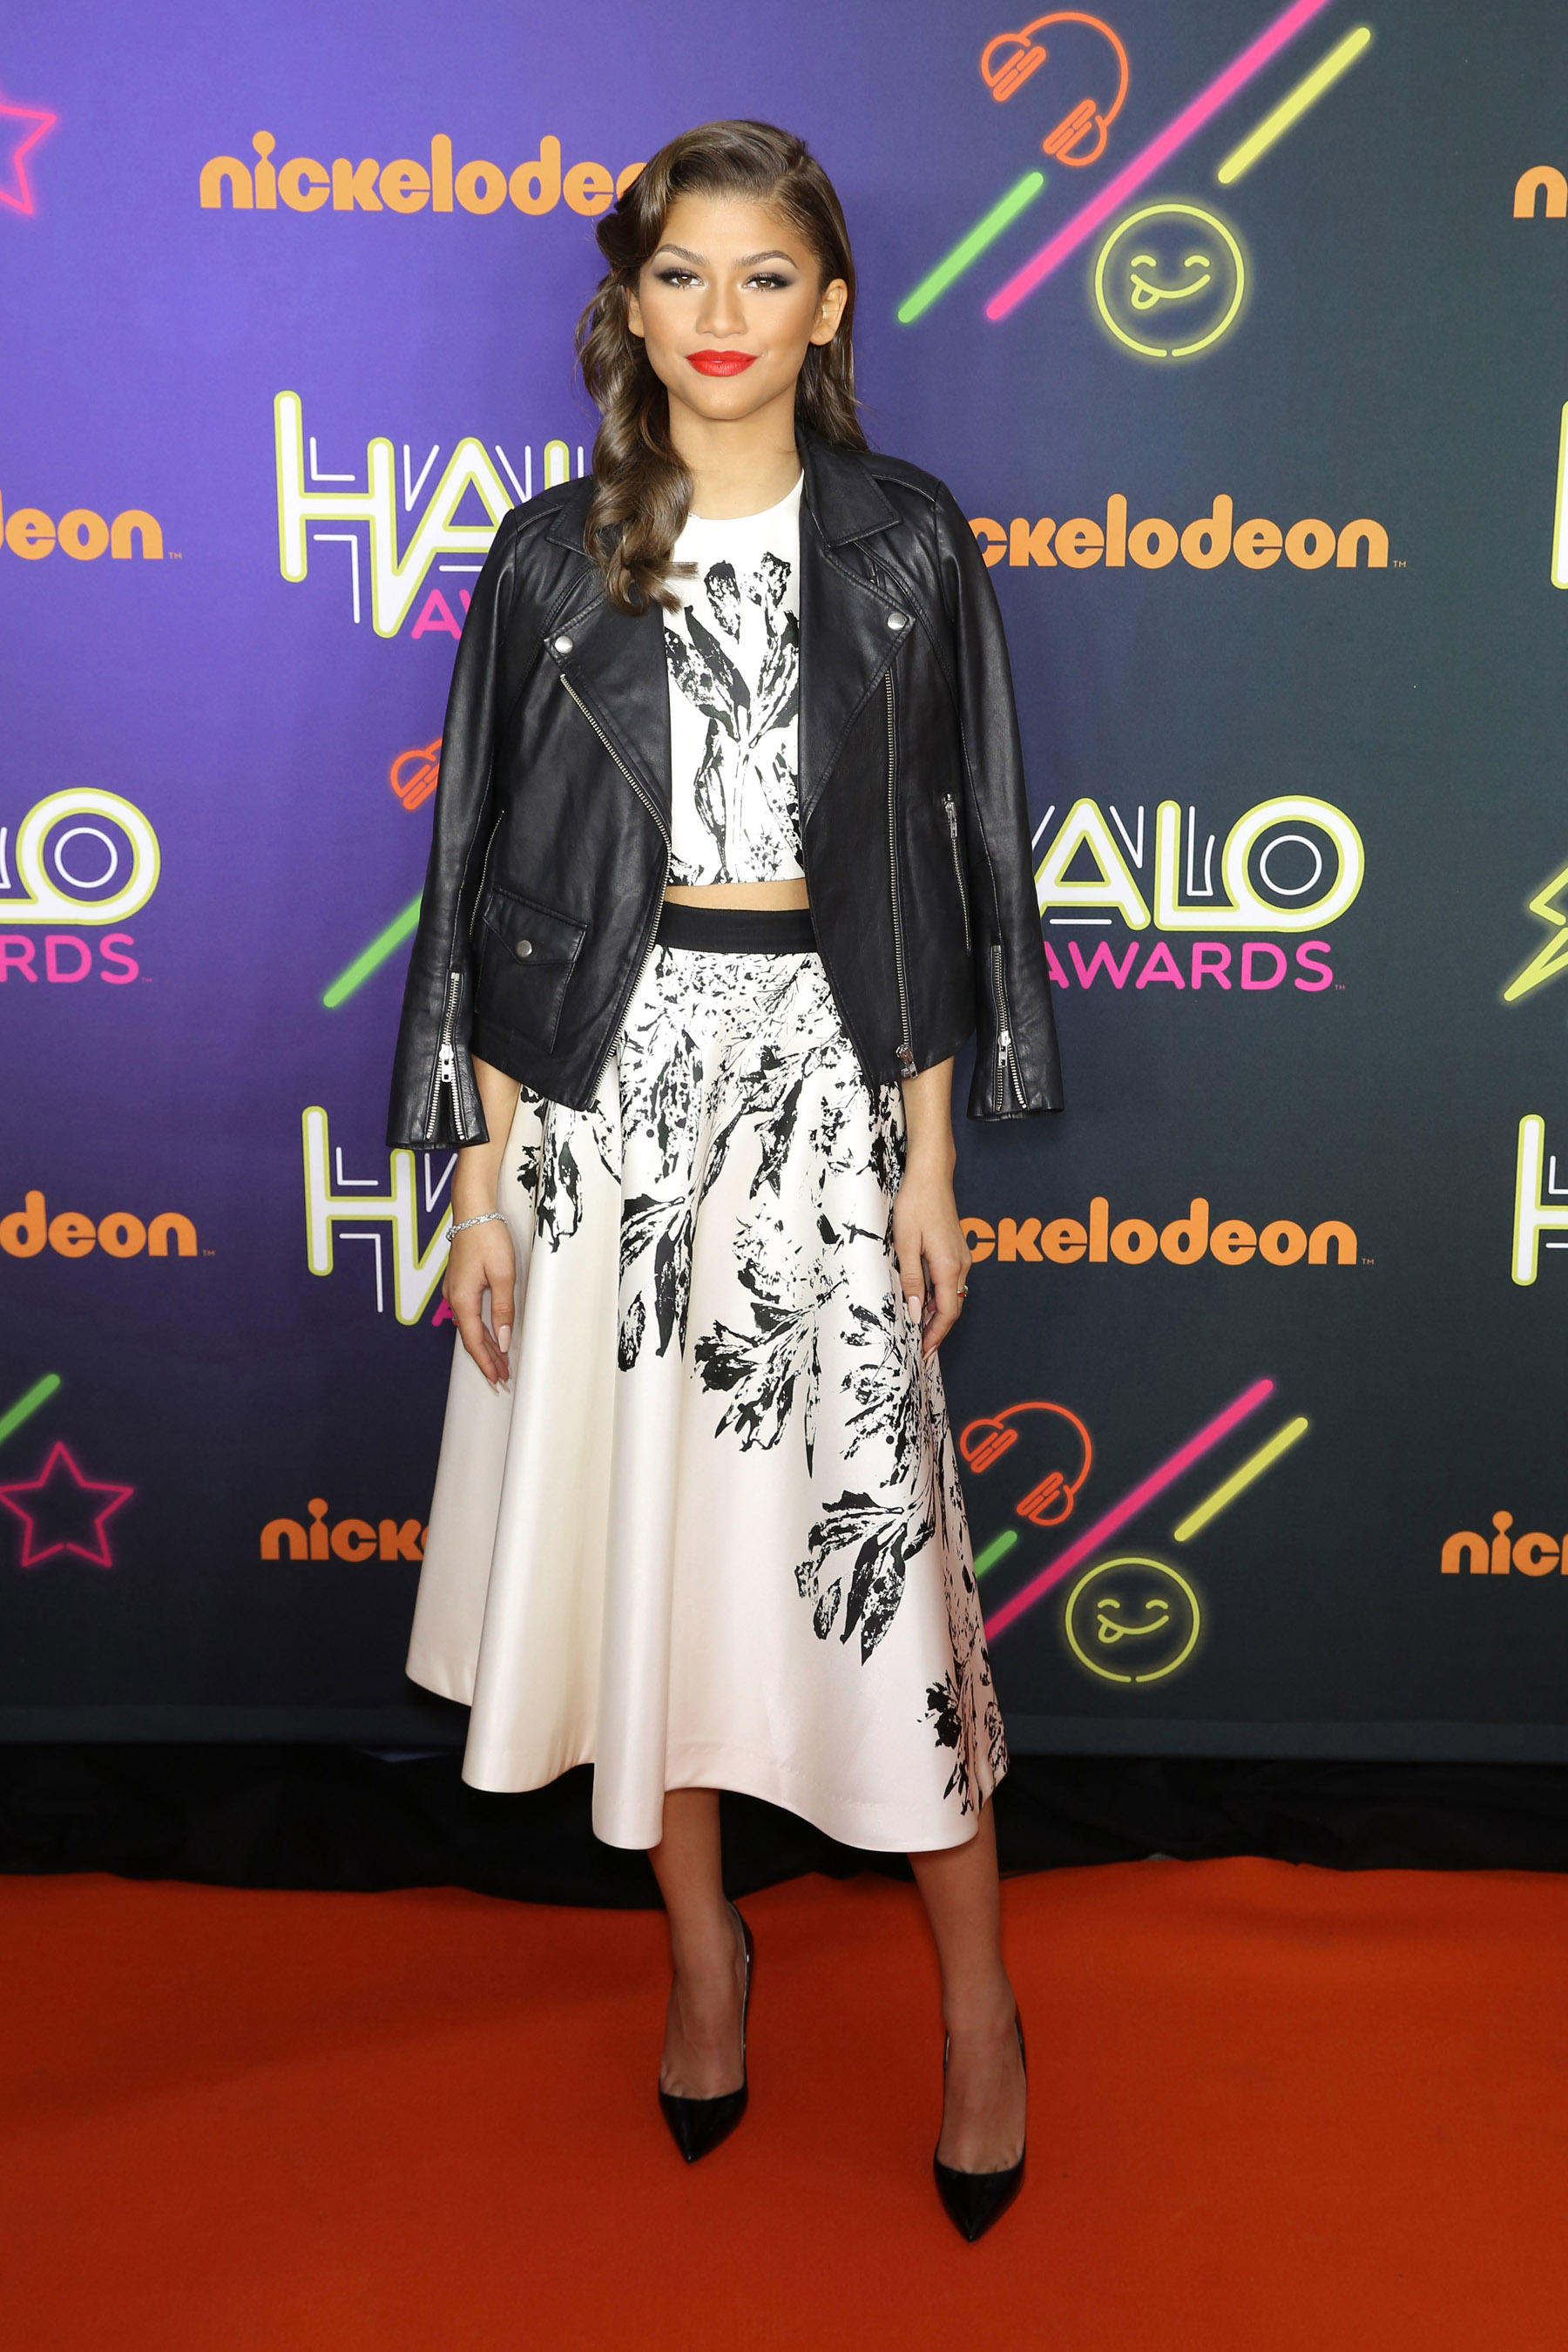 Celebrity talents arrive for the 2014 Nickelodeon HALO Awards in NYC